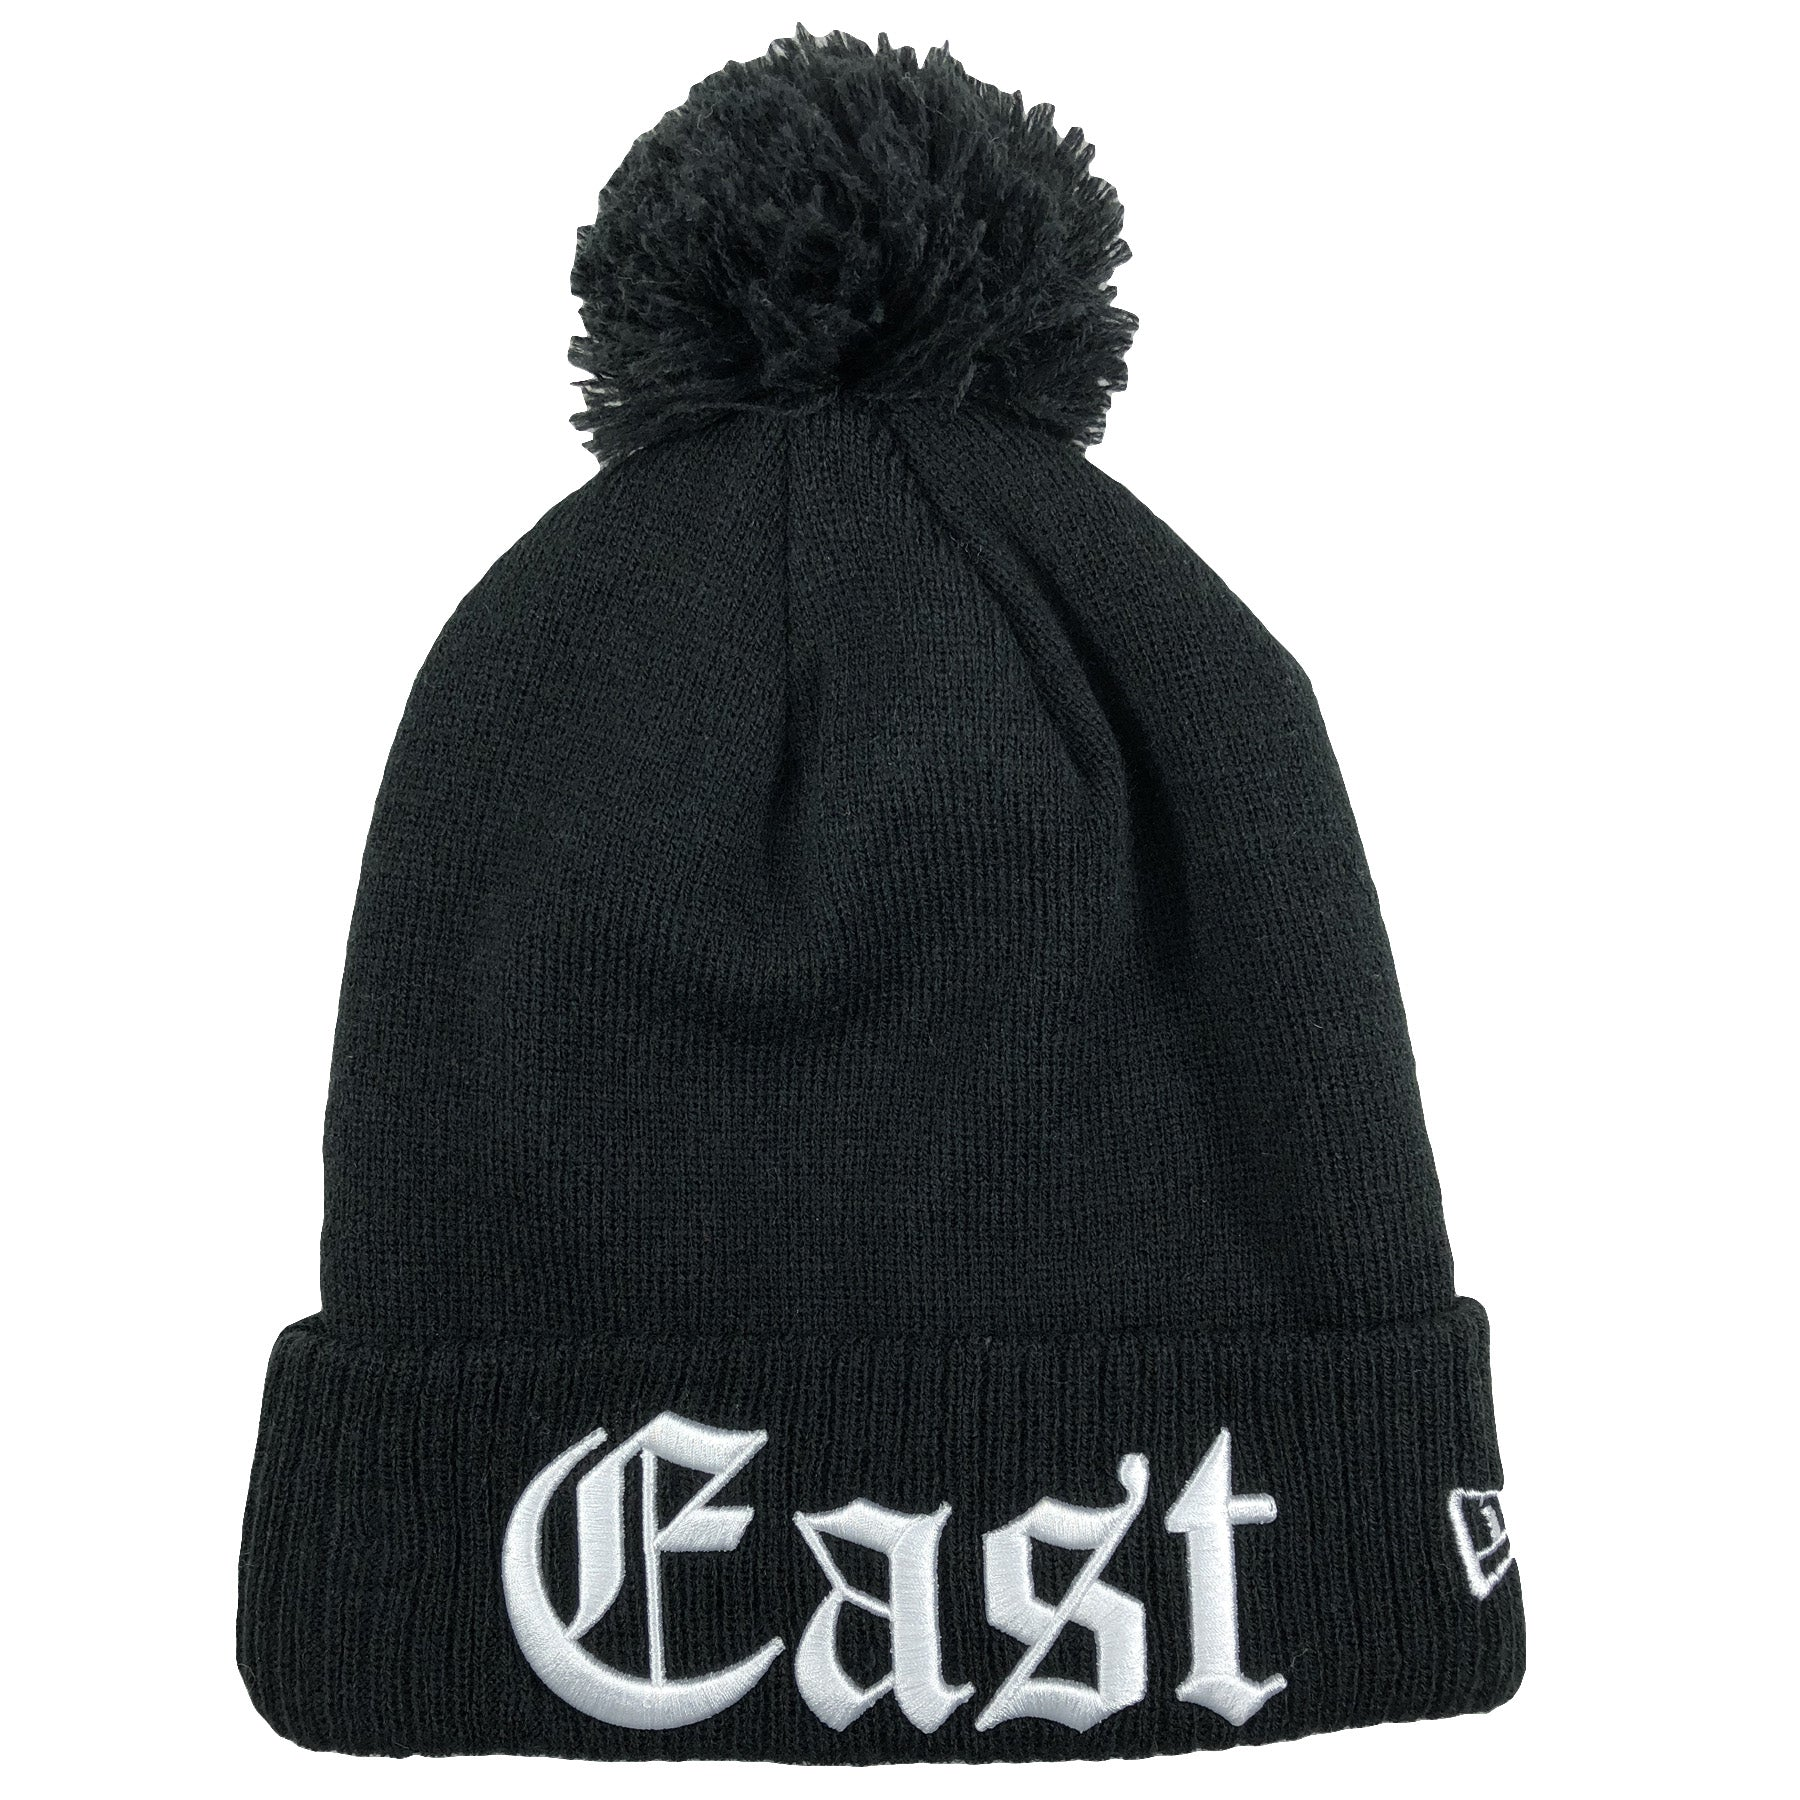 57c1ed2c292604 on one side of the Philadelphia 76ers Eastern Conference black knit beanie  is the word East